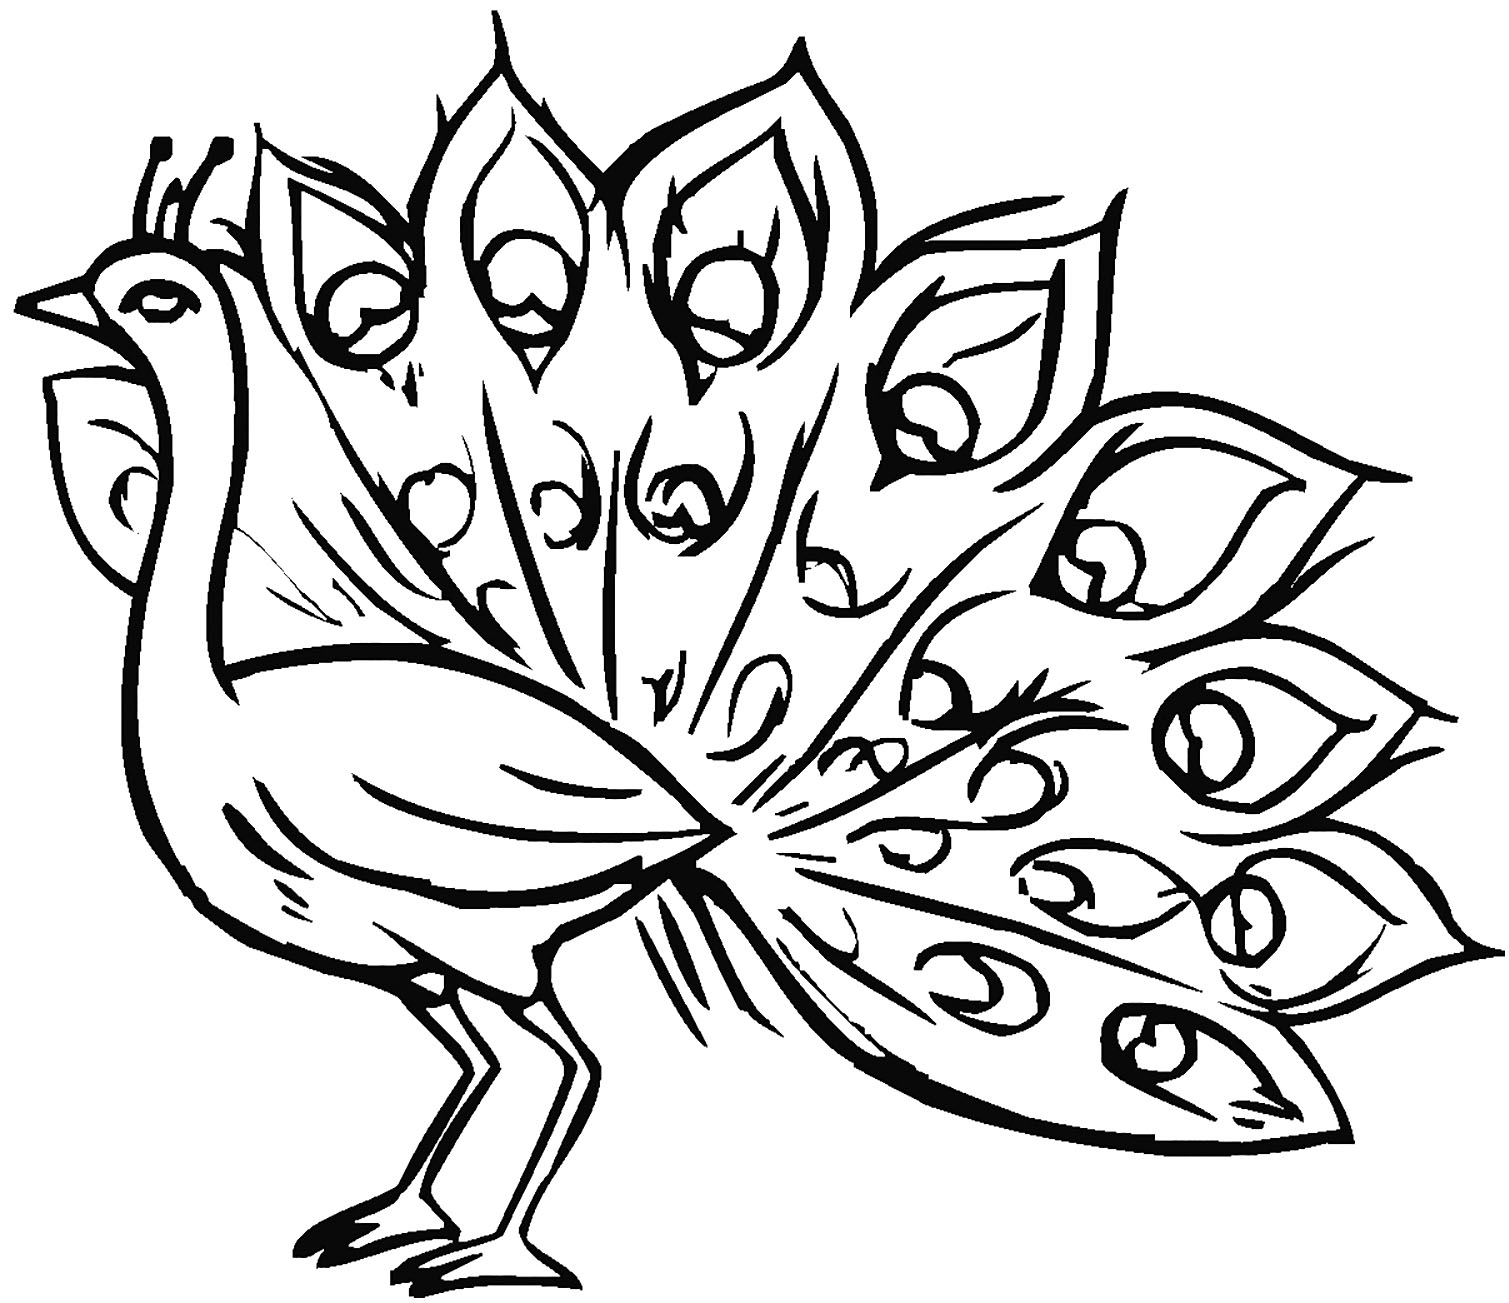 Peacocks coloring page with few details for kids